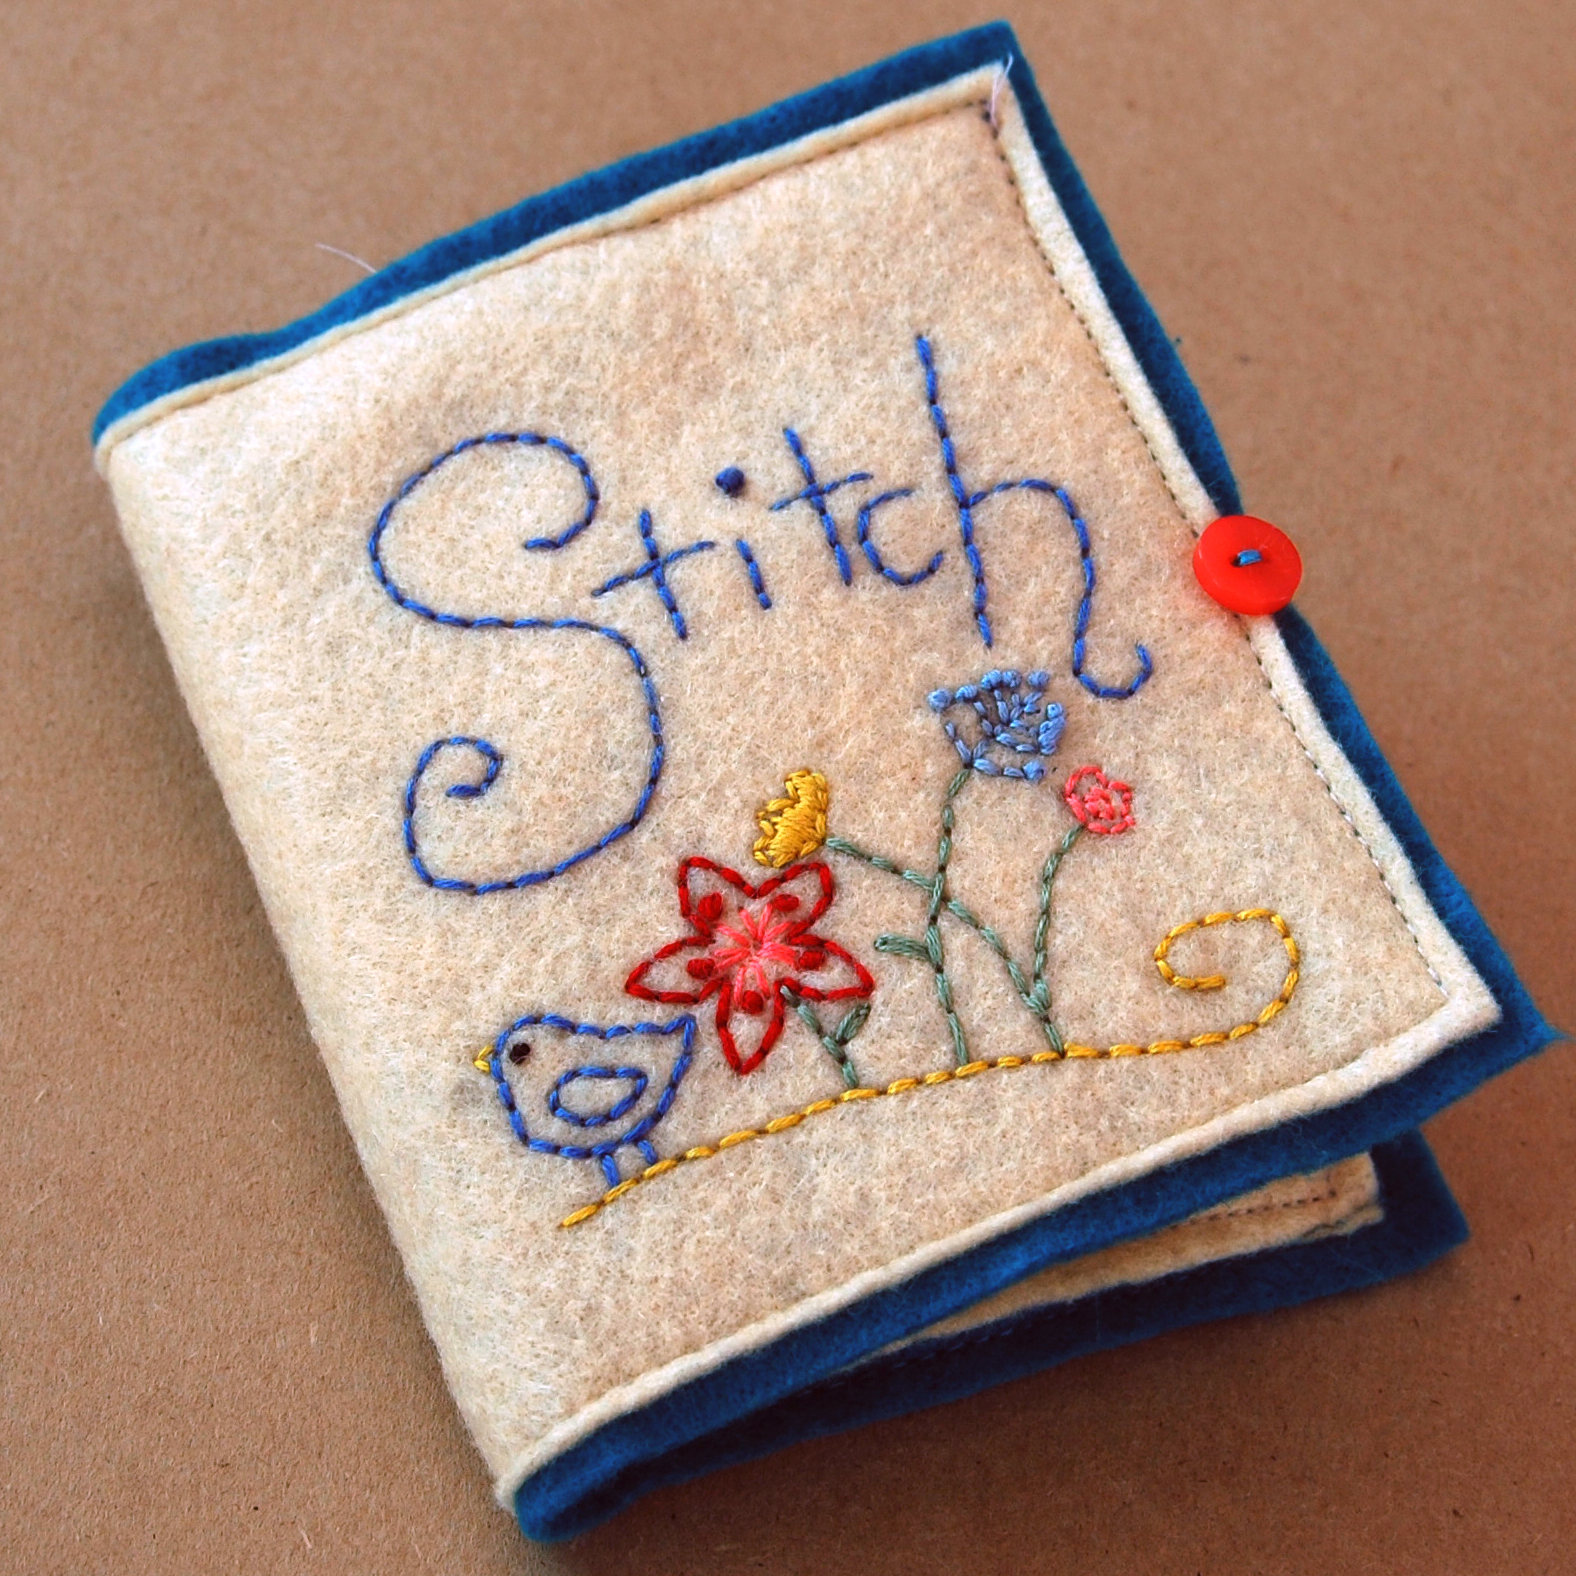 Ah Christmas! The joys of getting! Especially this lovely sewing kit handmade by Anna.